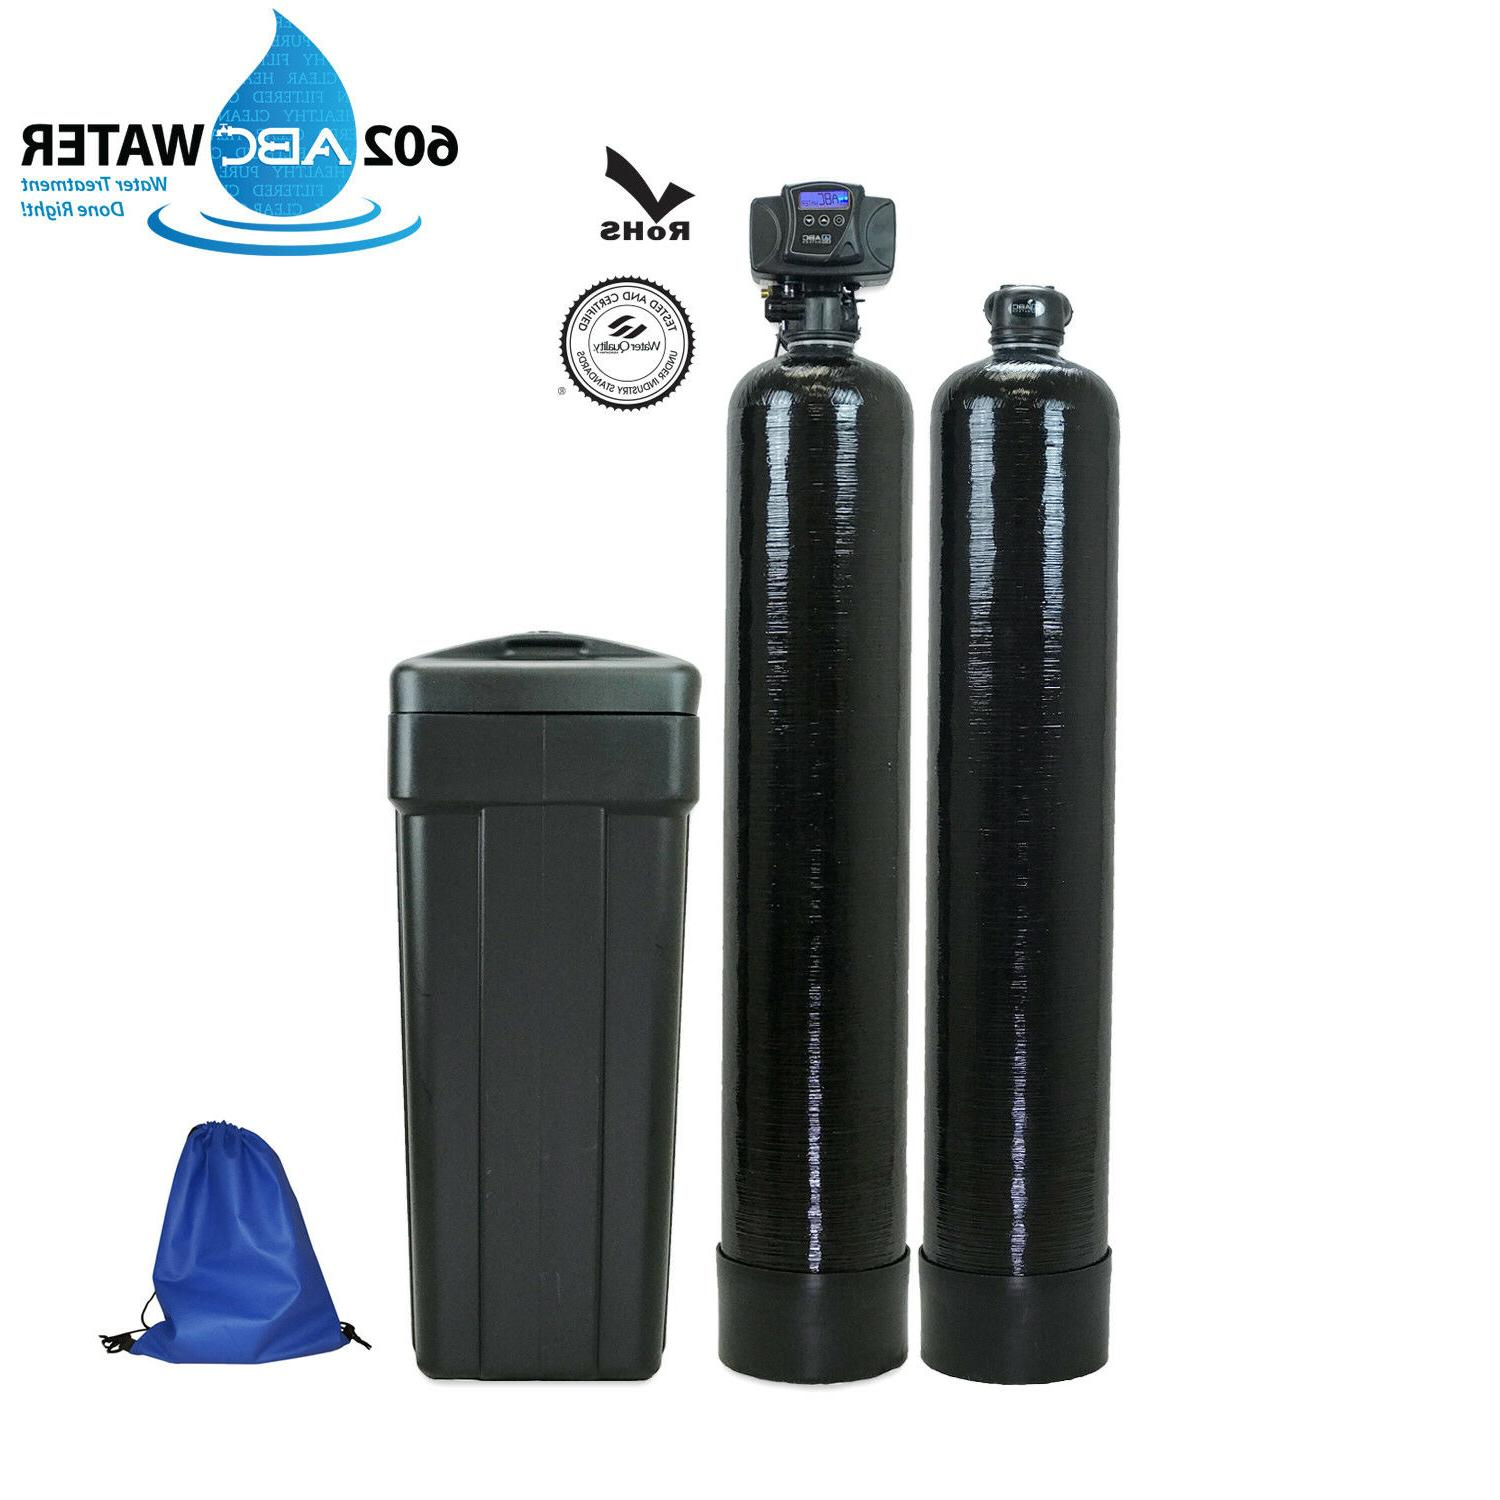 abcwaters built 5600sxt 48 000 water softener